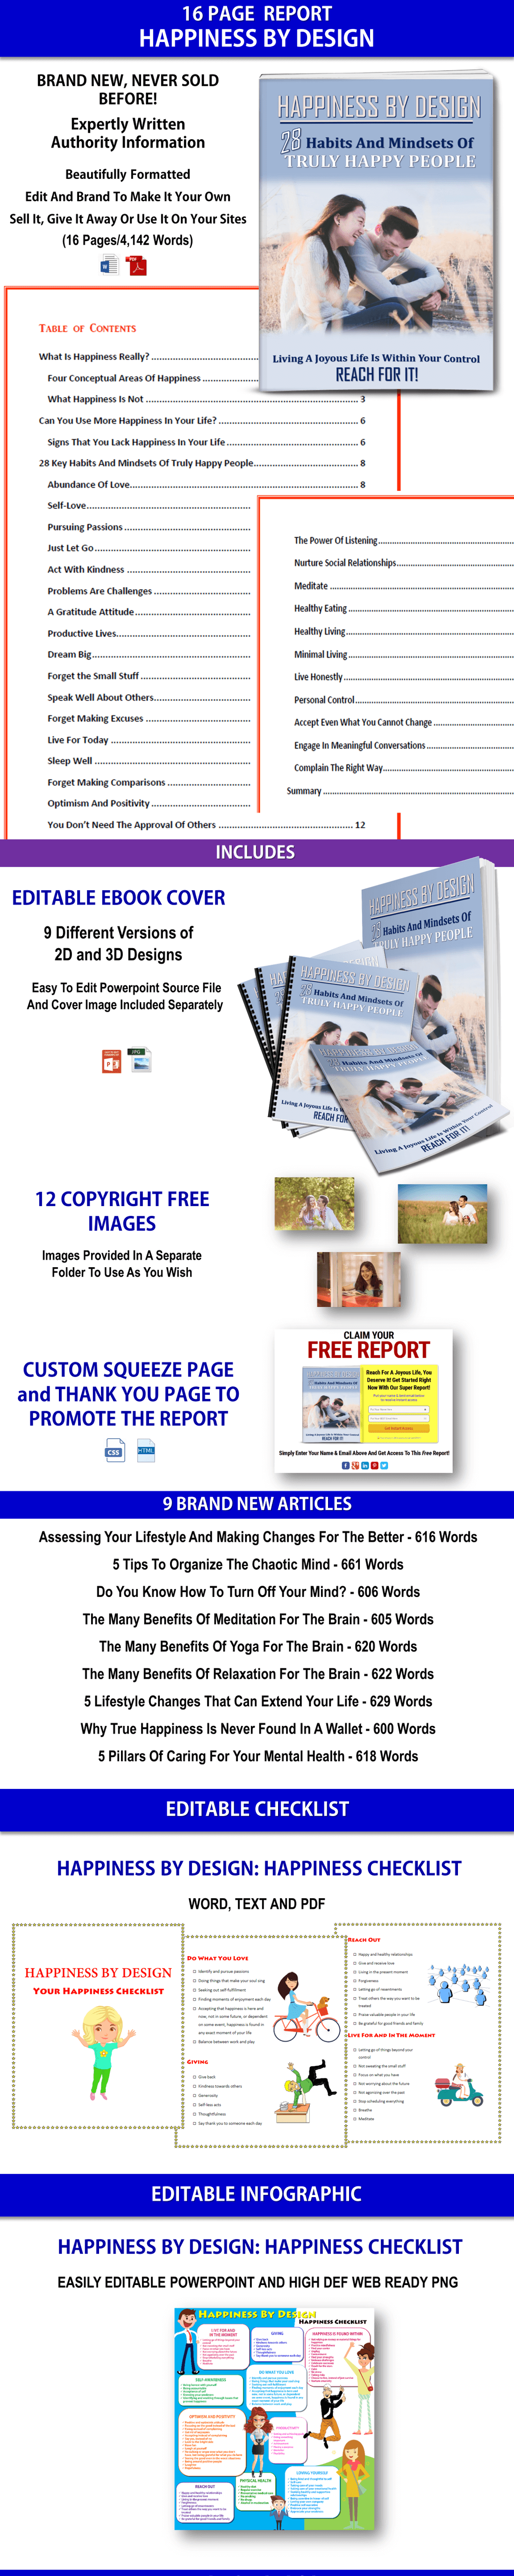 28 Habits/Mindsets Of Happy People, Articles, Checklist & Infographic PLR Pack